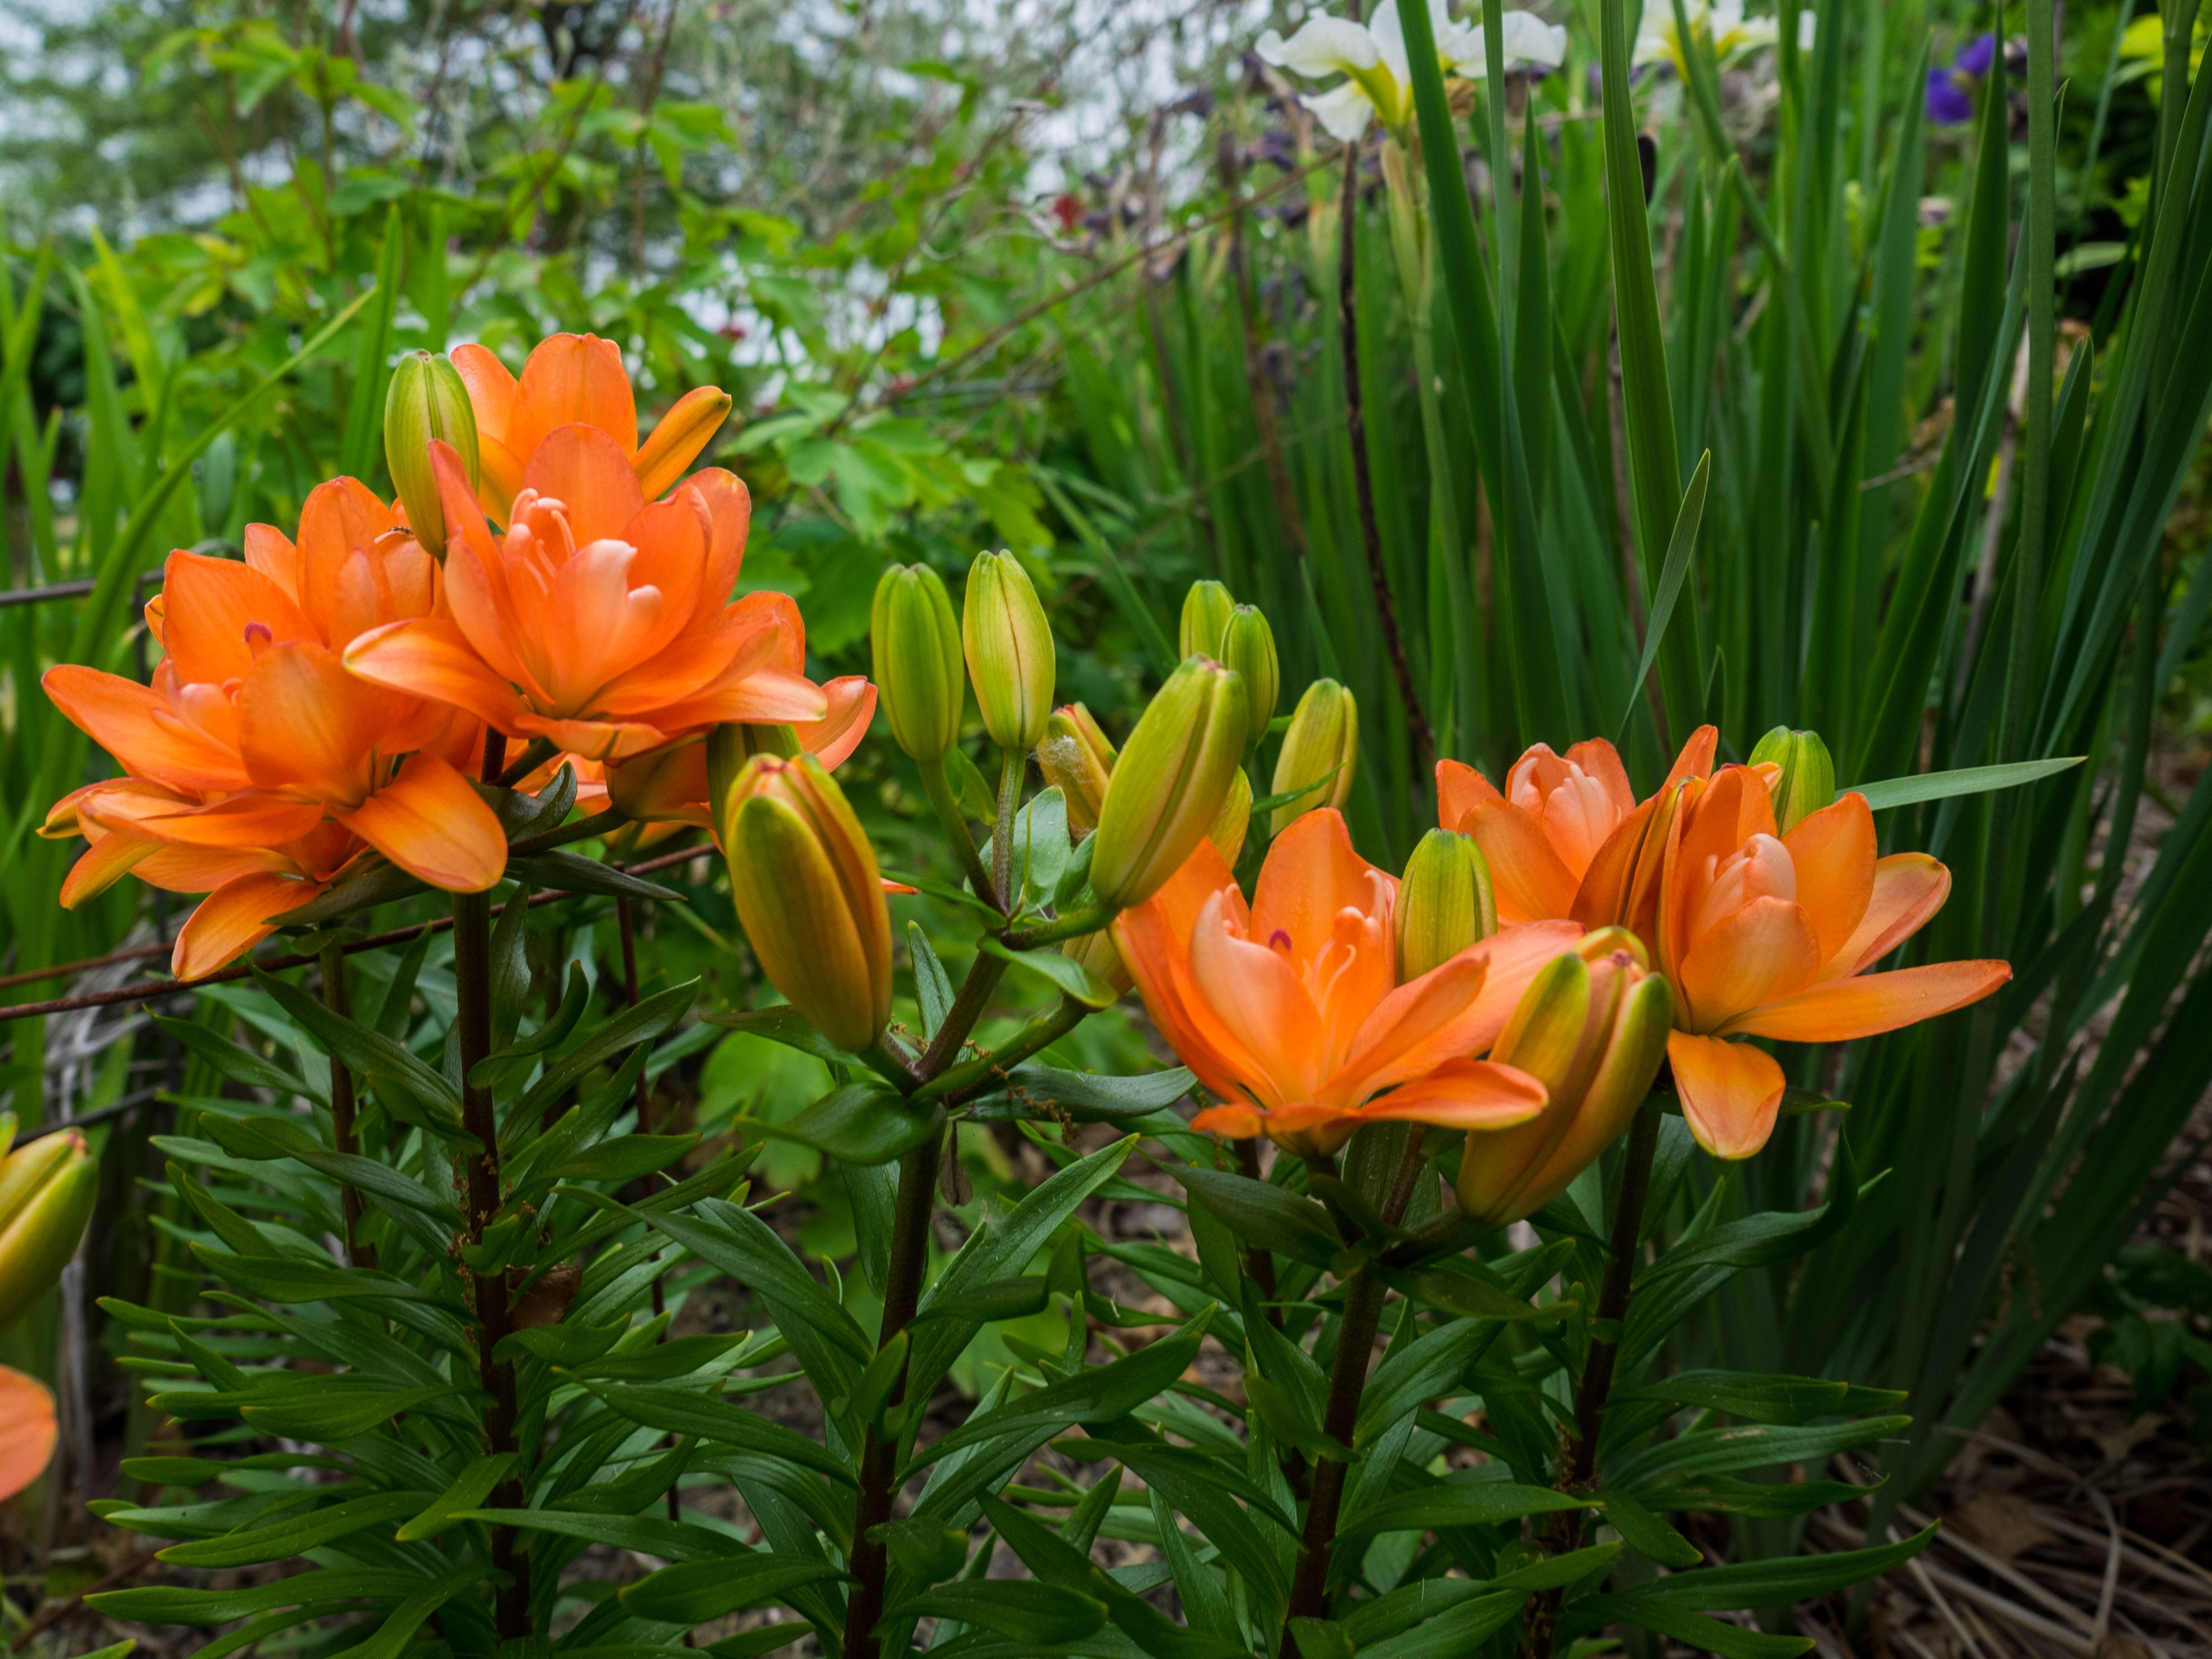 Pictures of different lily flowers 163 Types of Flowers A to Z With Pictures J Birdny